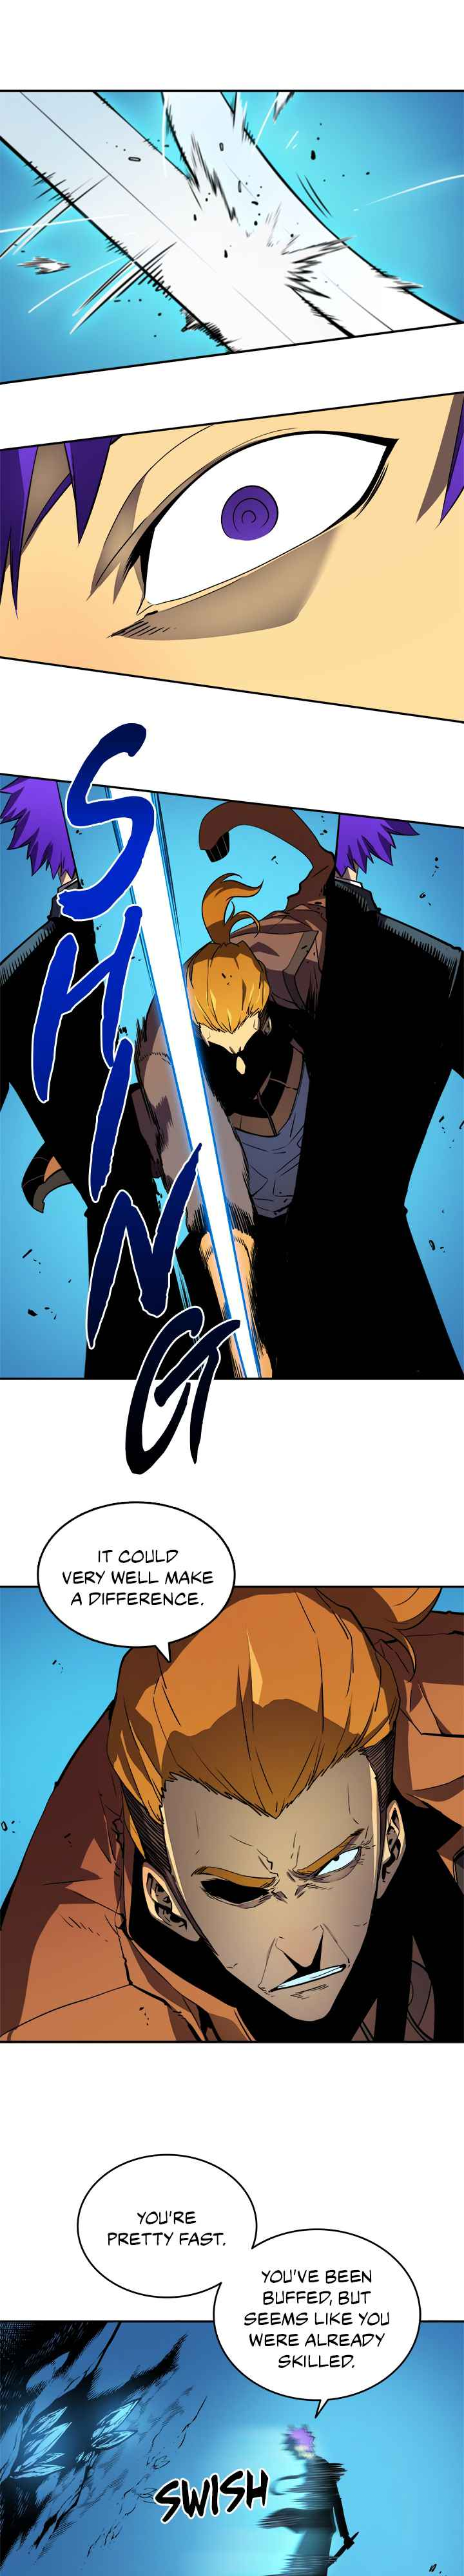 Solo Leveling Chapter 31 Page 5